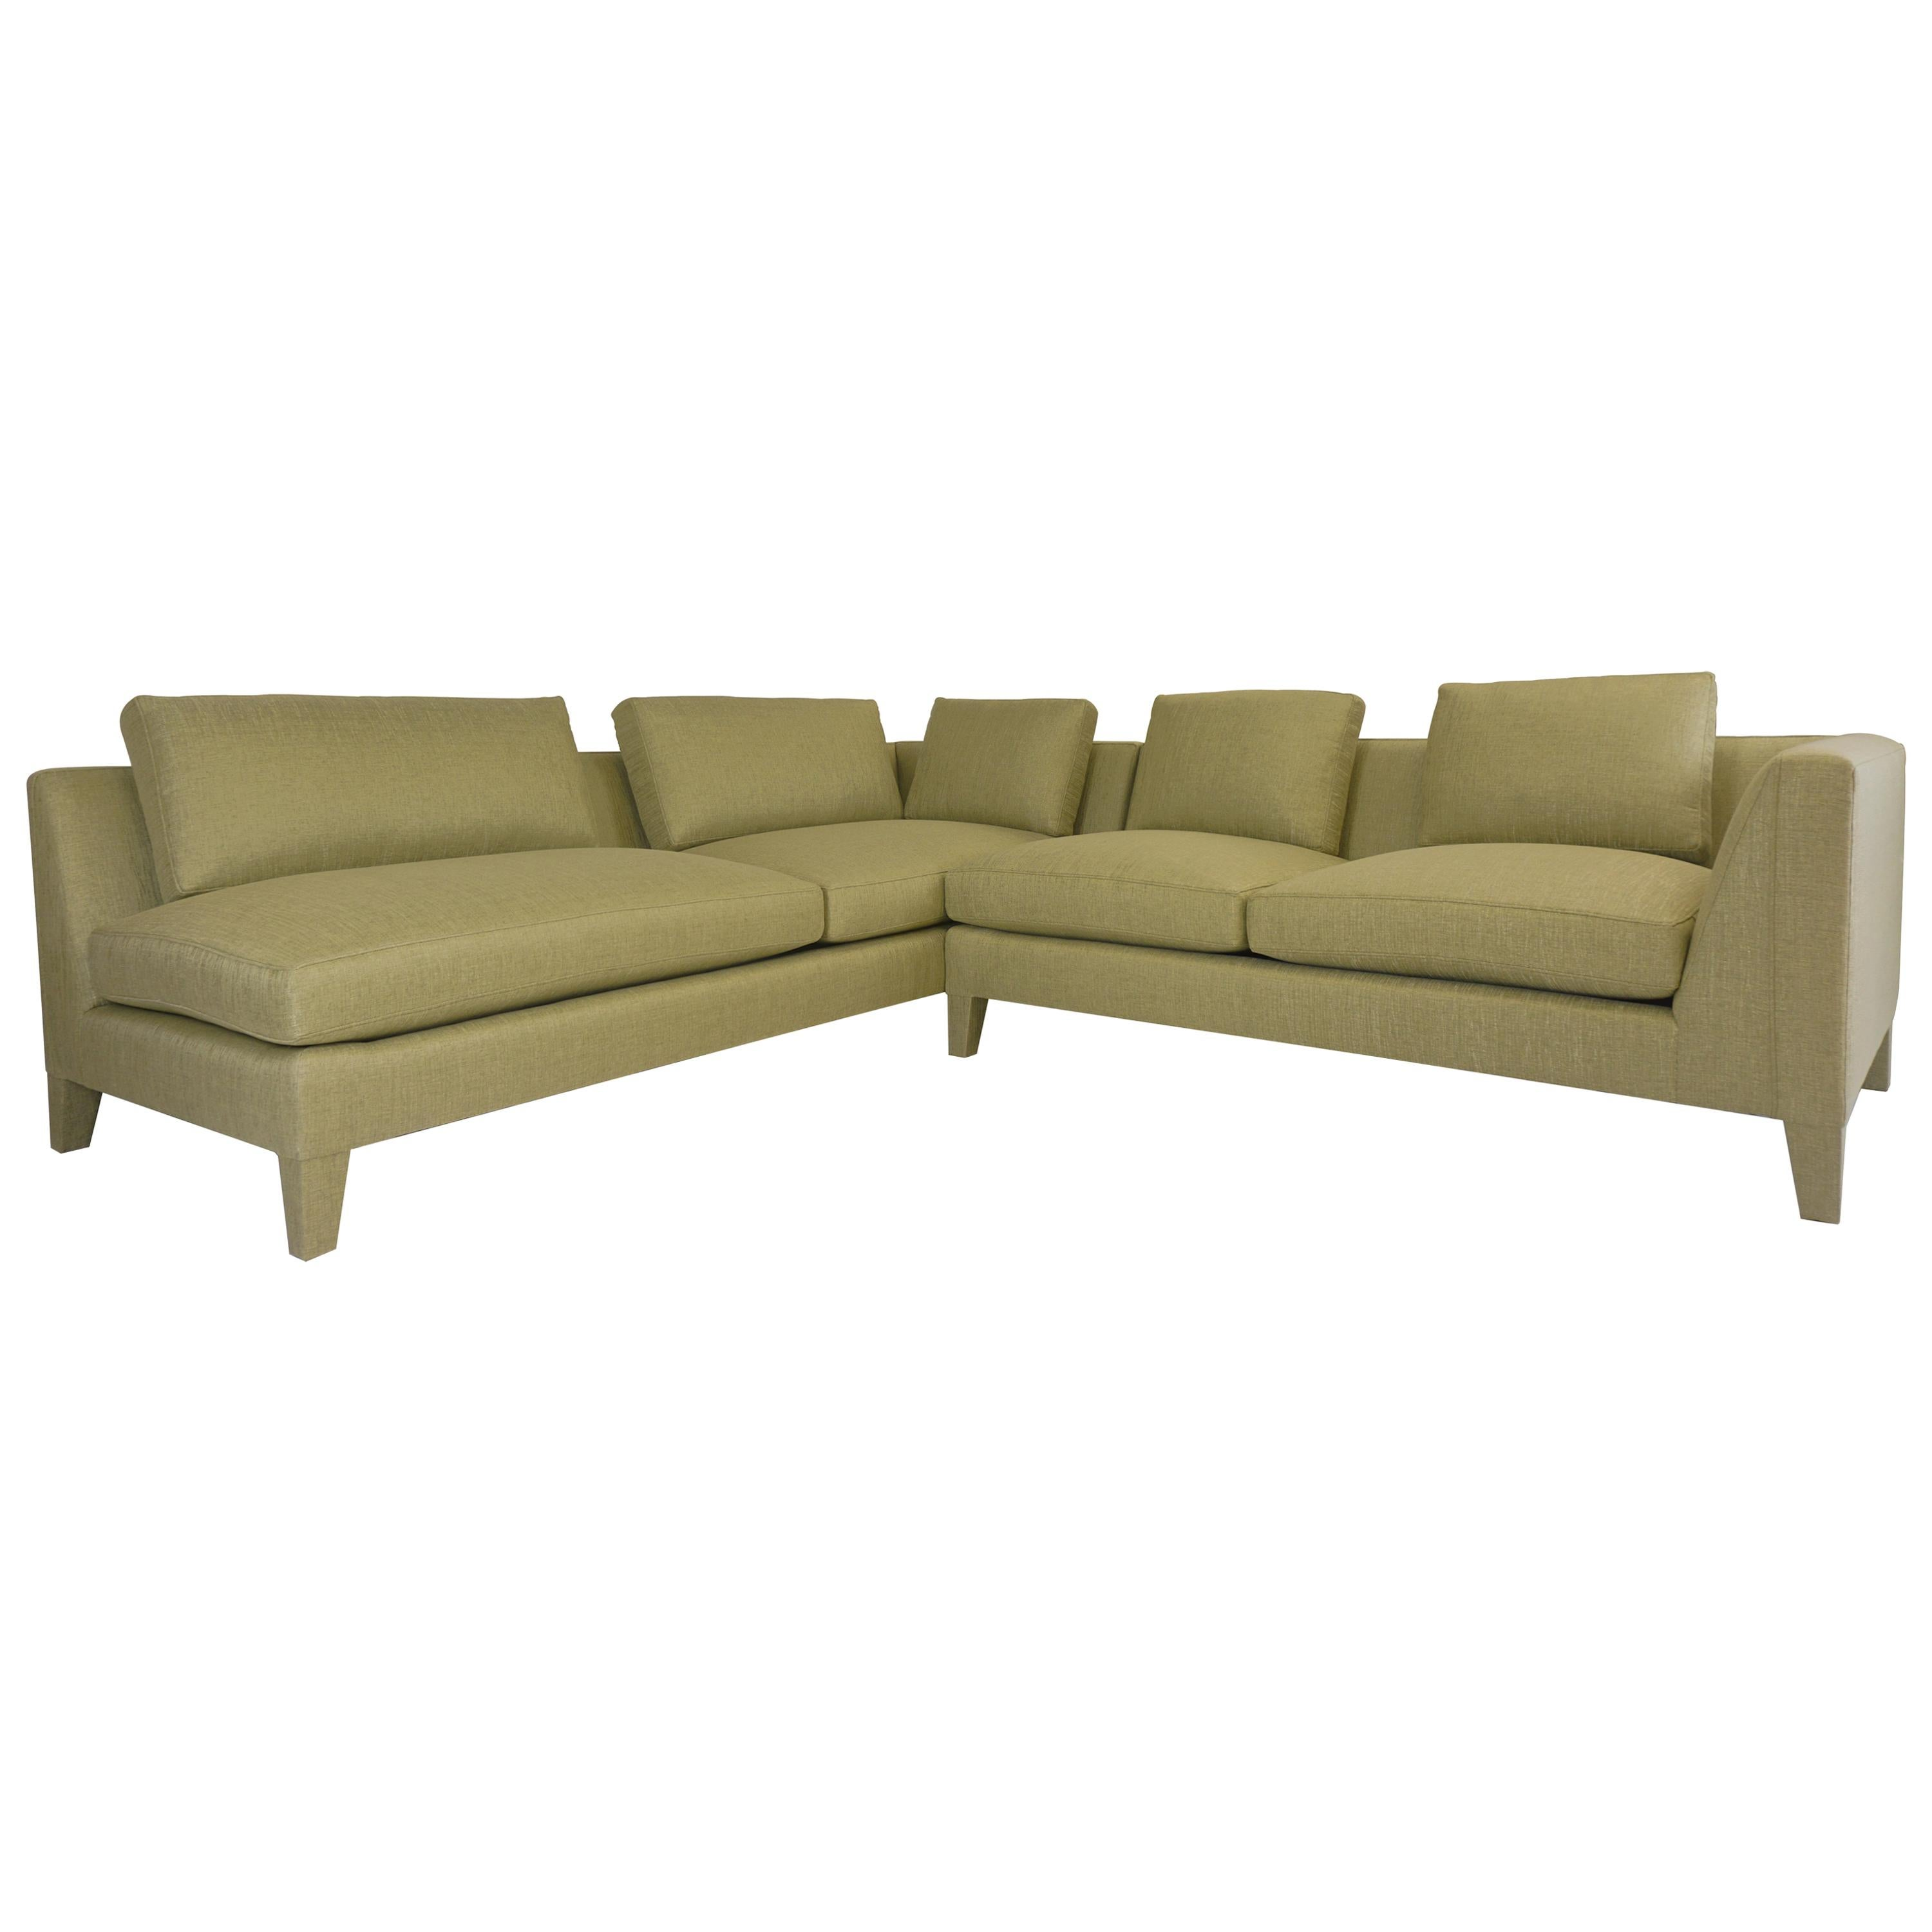 Modern Loose Cushion Sectional Sofa with Upholstered Legs